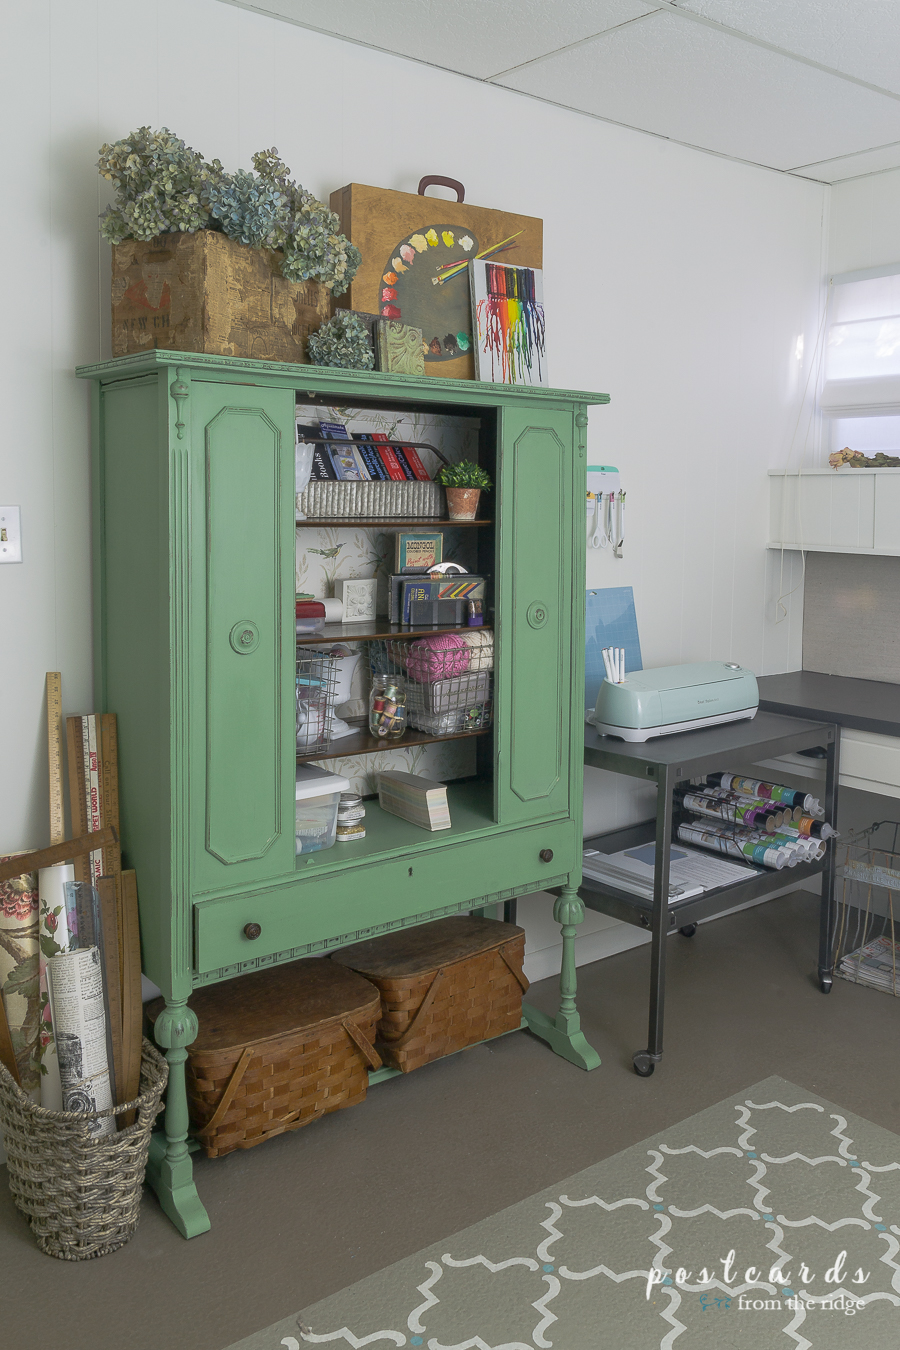 green painted vintage China cabinet used for storing art supplies